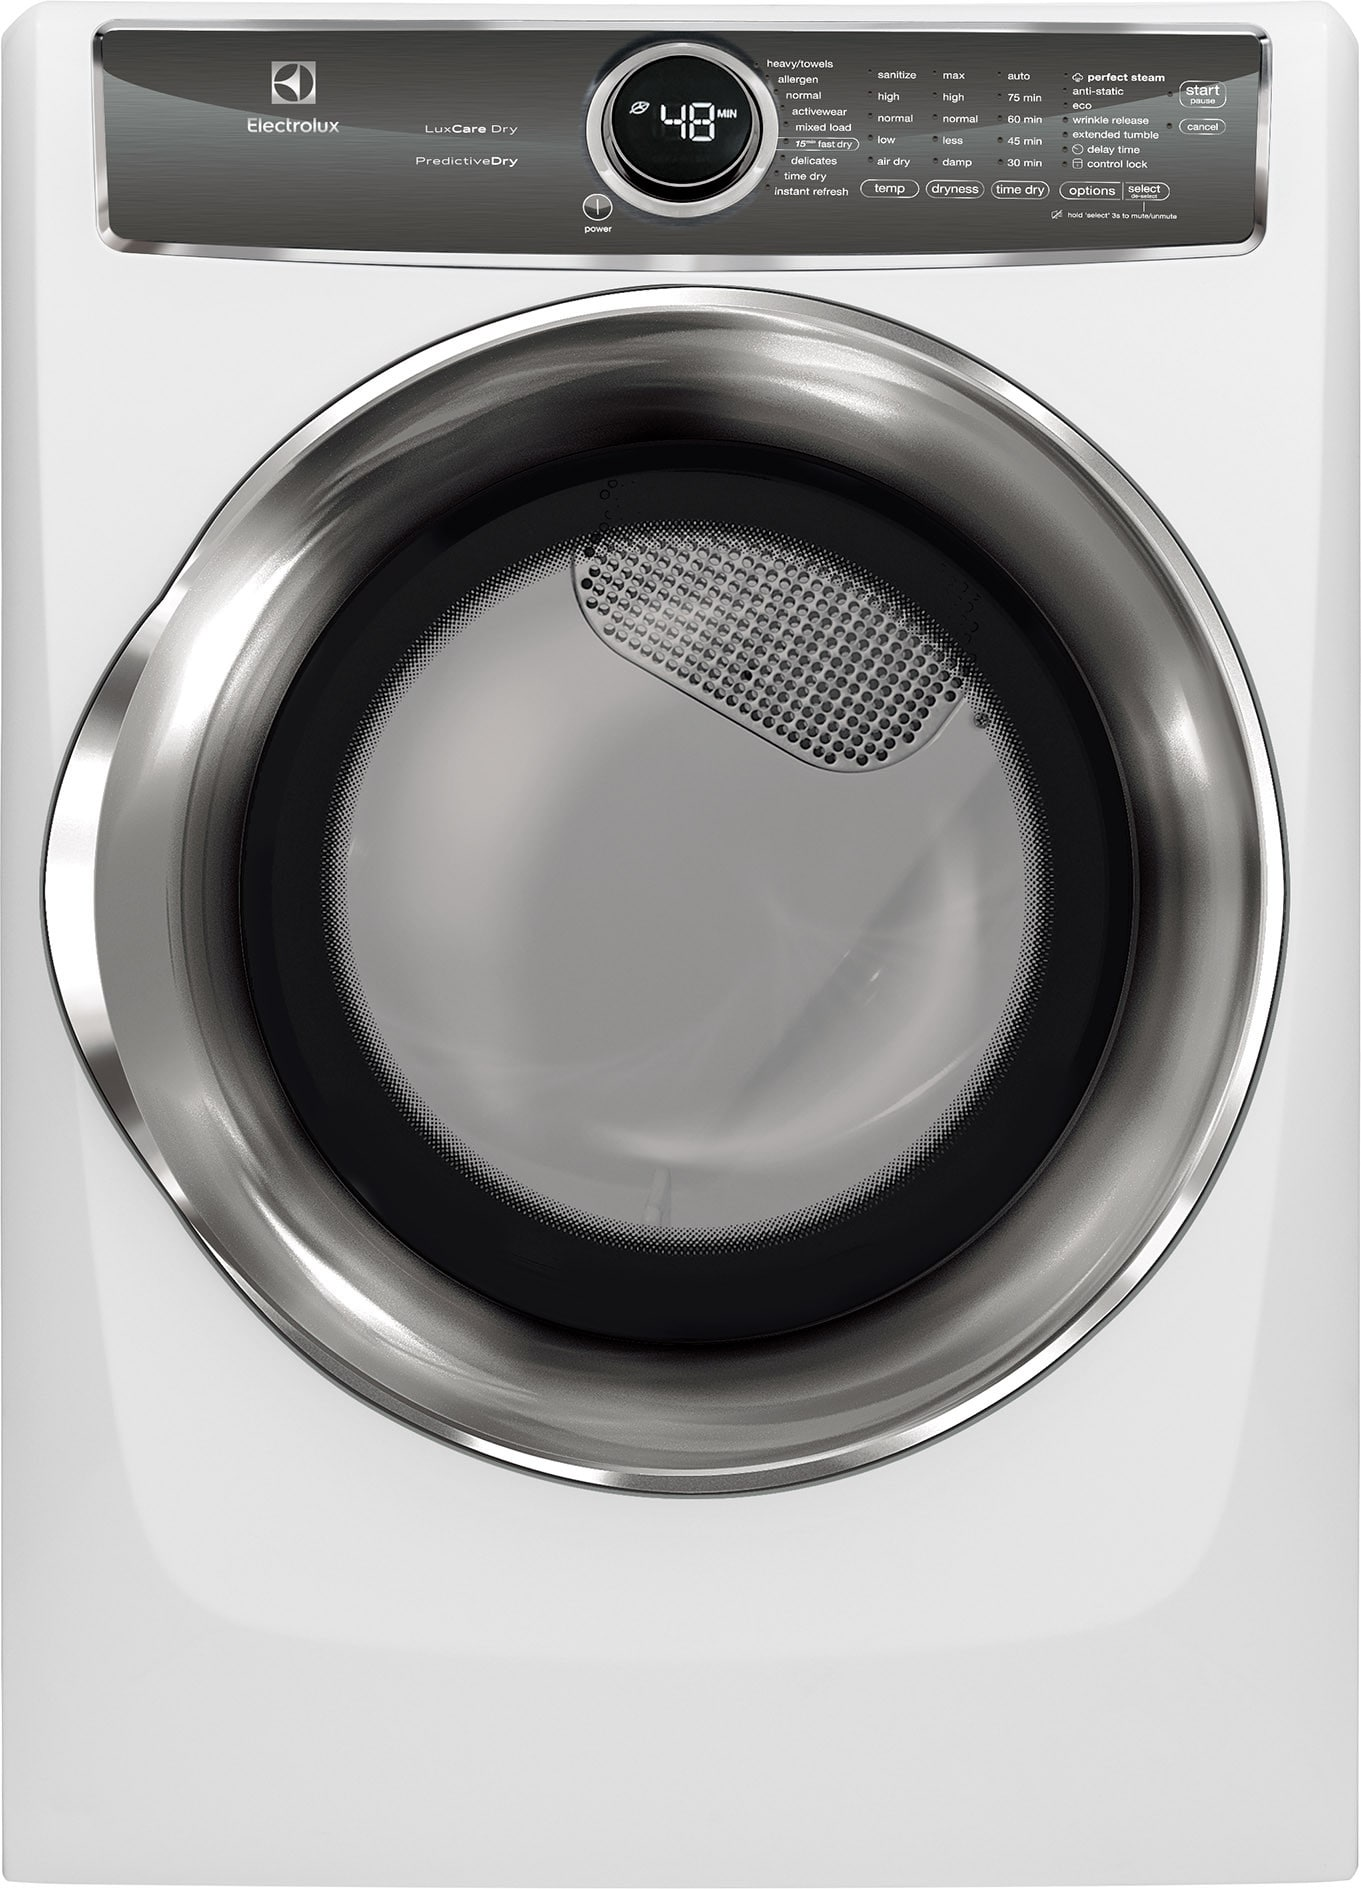 luxury featuring glide electrolux laundry pedestal appliances drawers qv zm touch drawer open